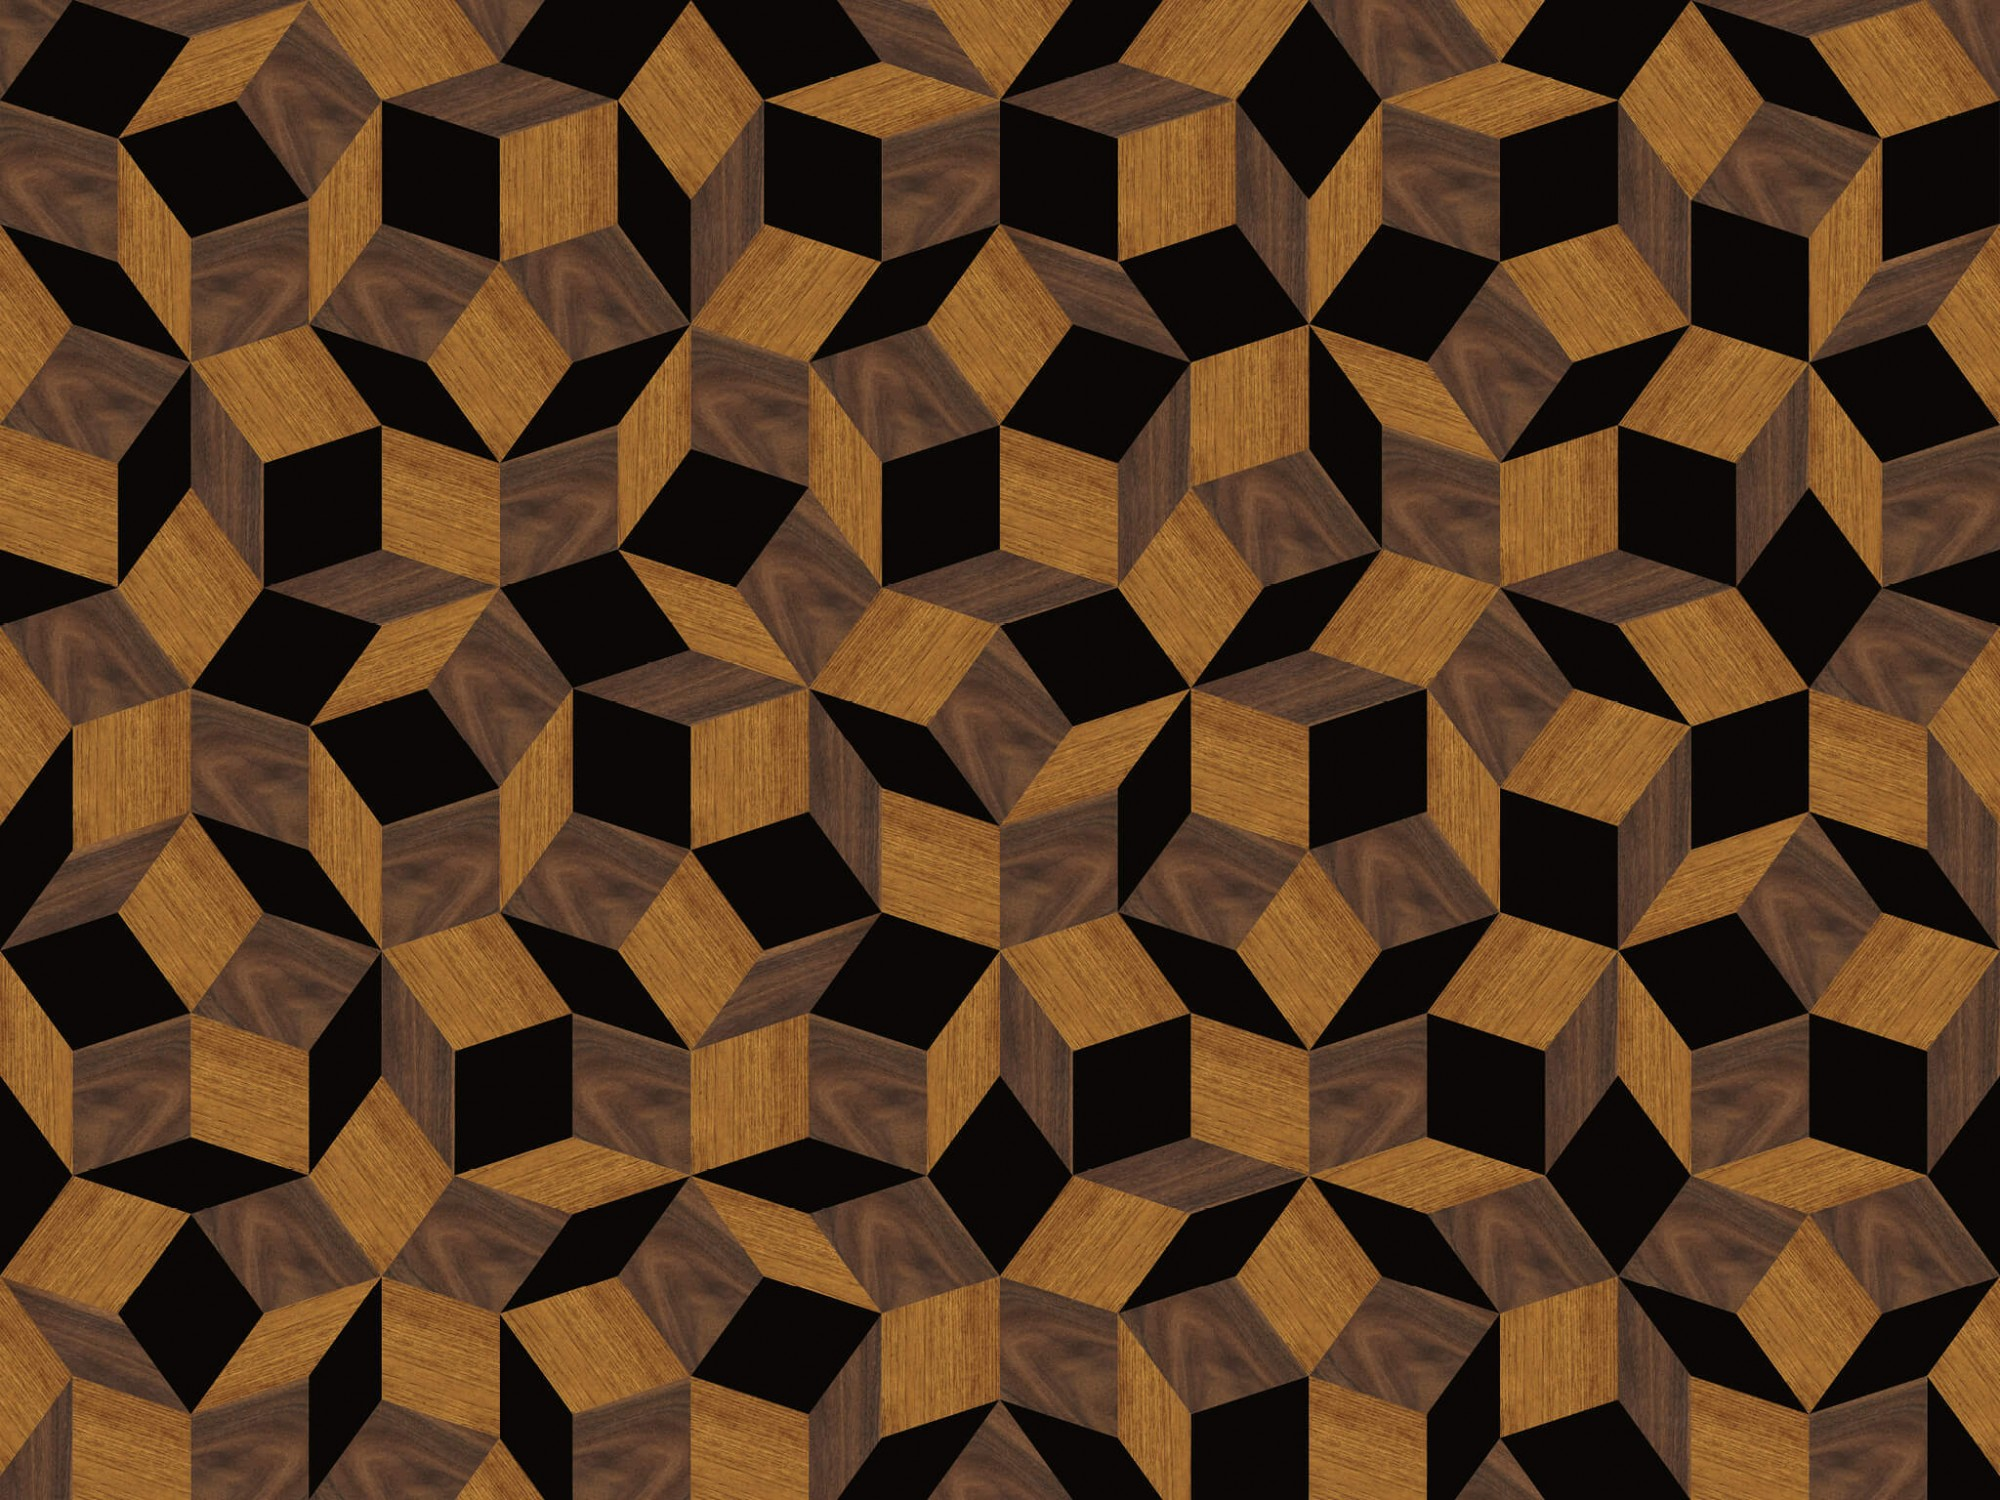 Zoom du papier peint motif géométrique penrose, Penrose Wood & black, collection Penrose, design IchetKar